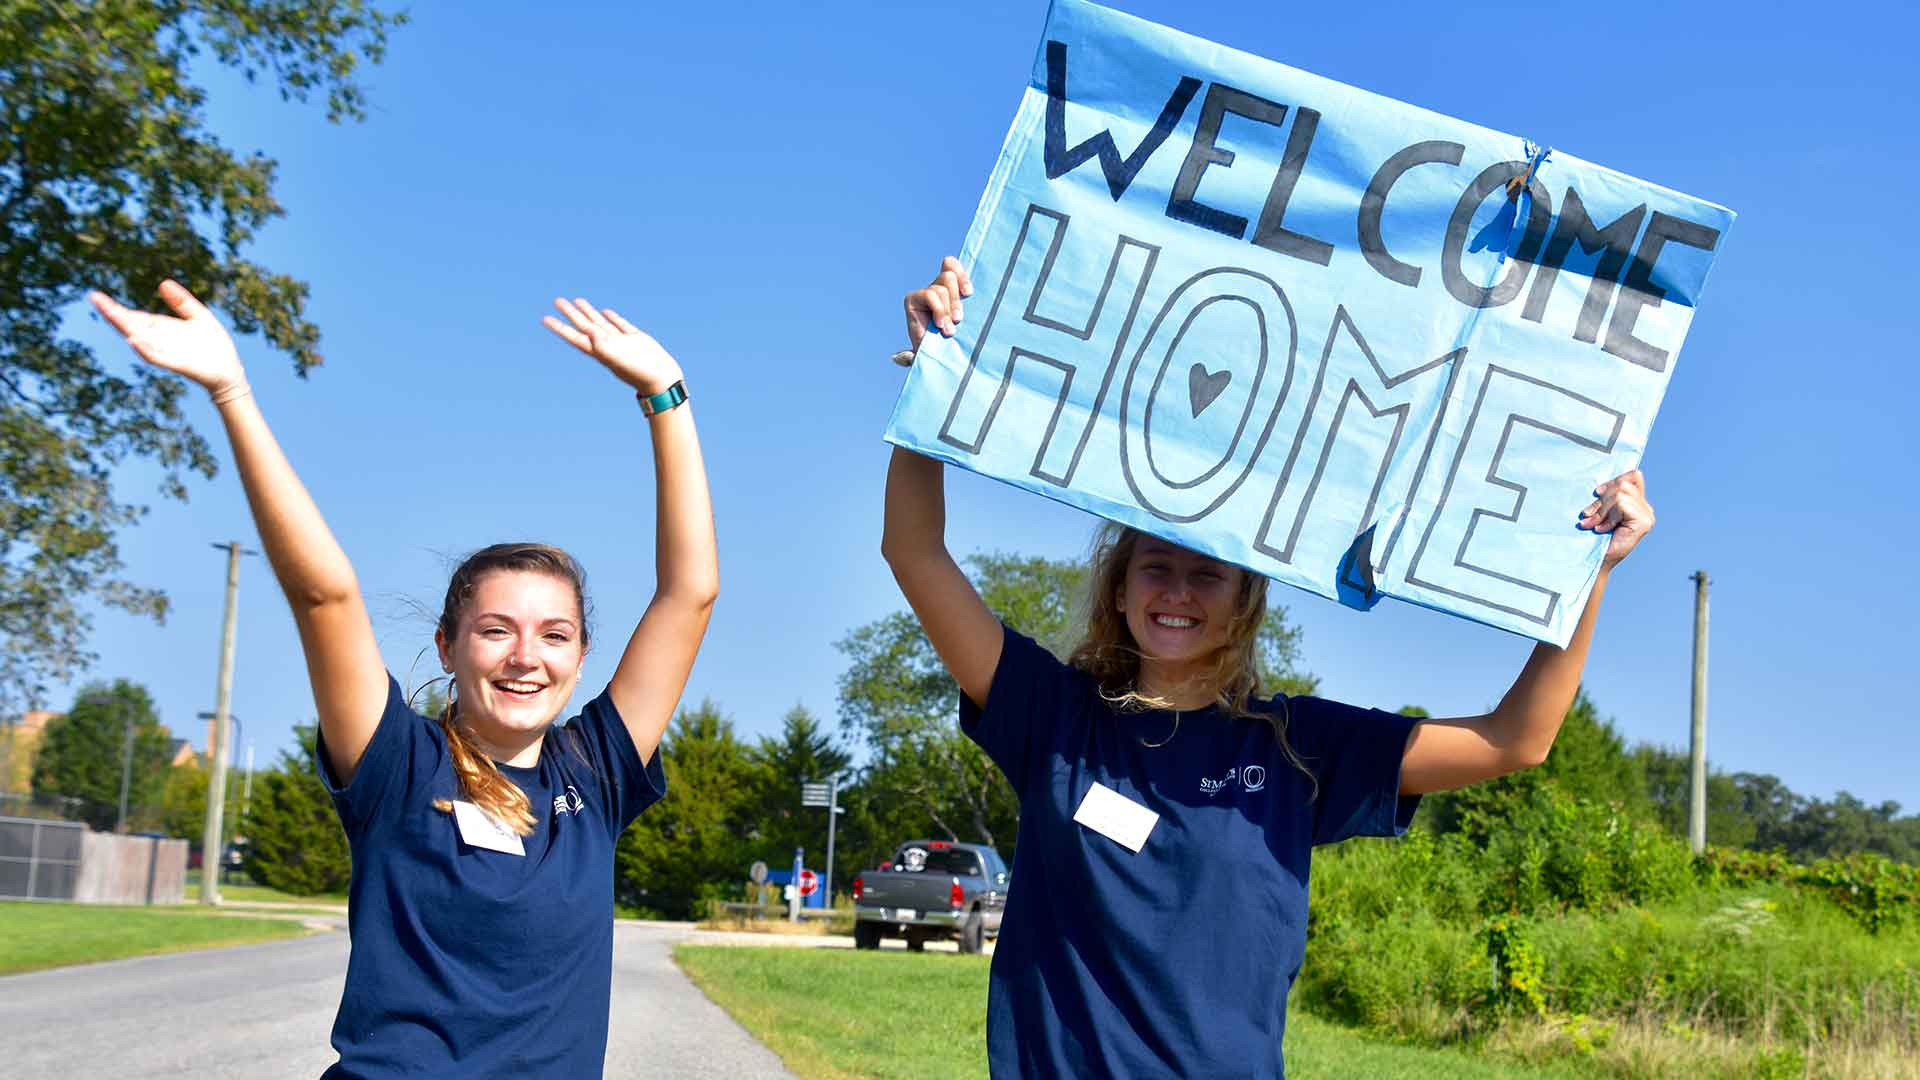 SMCM Orientation Team welcome new students at Move In Day